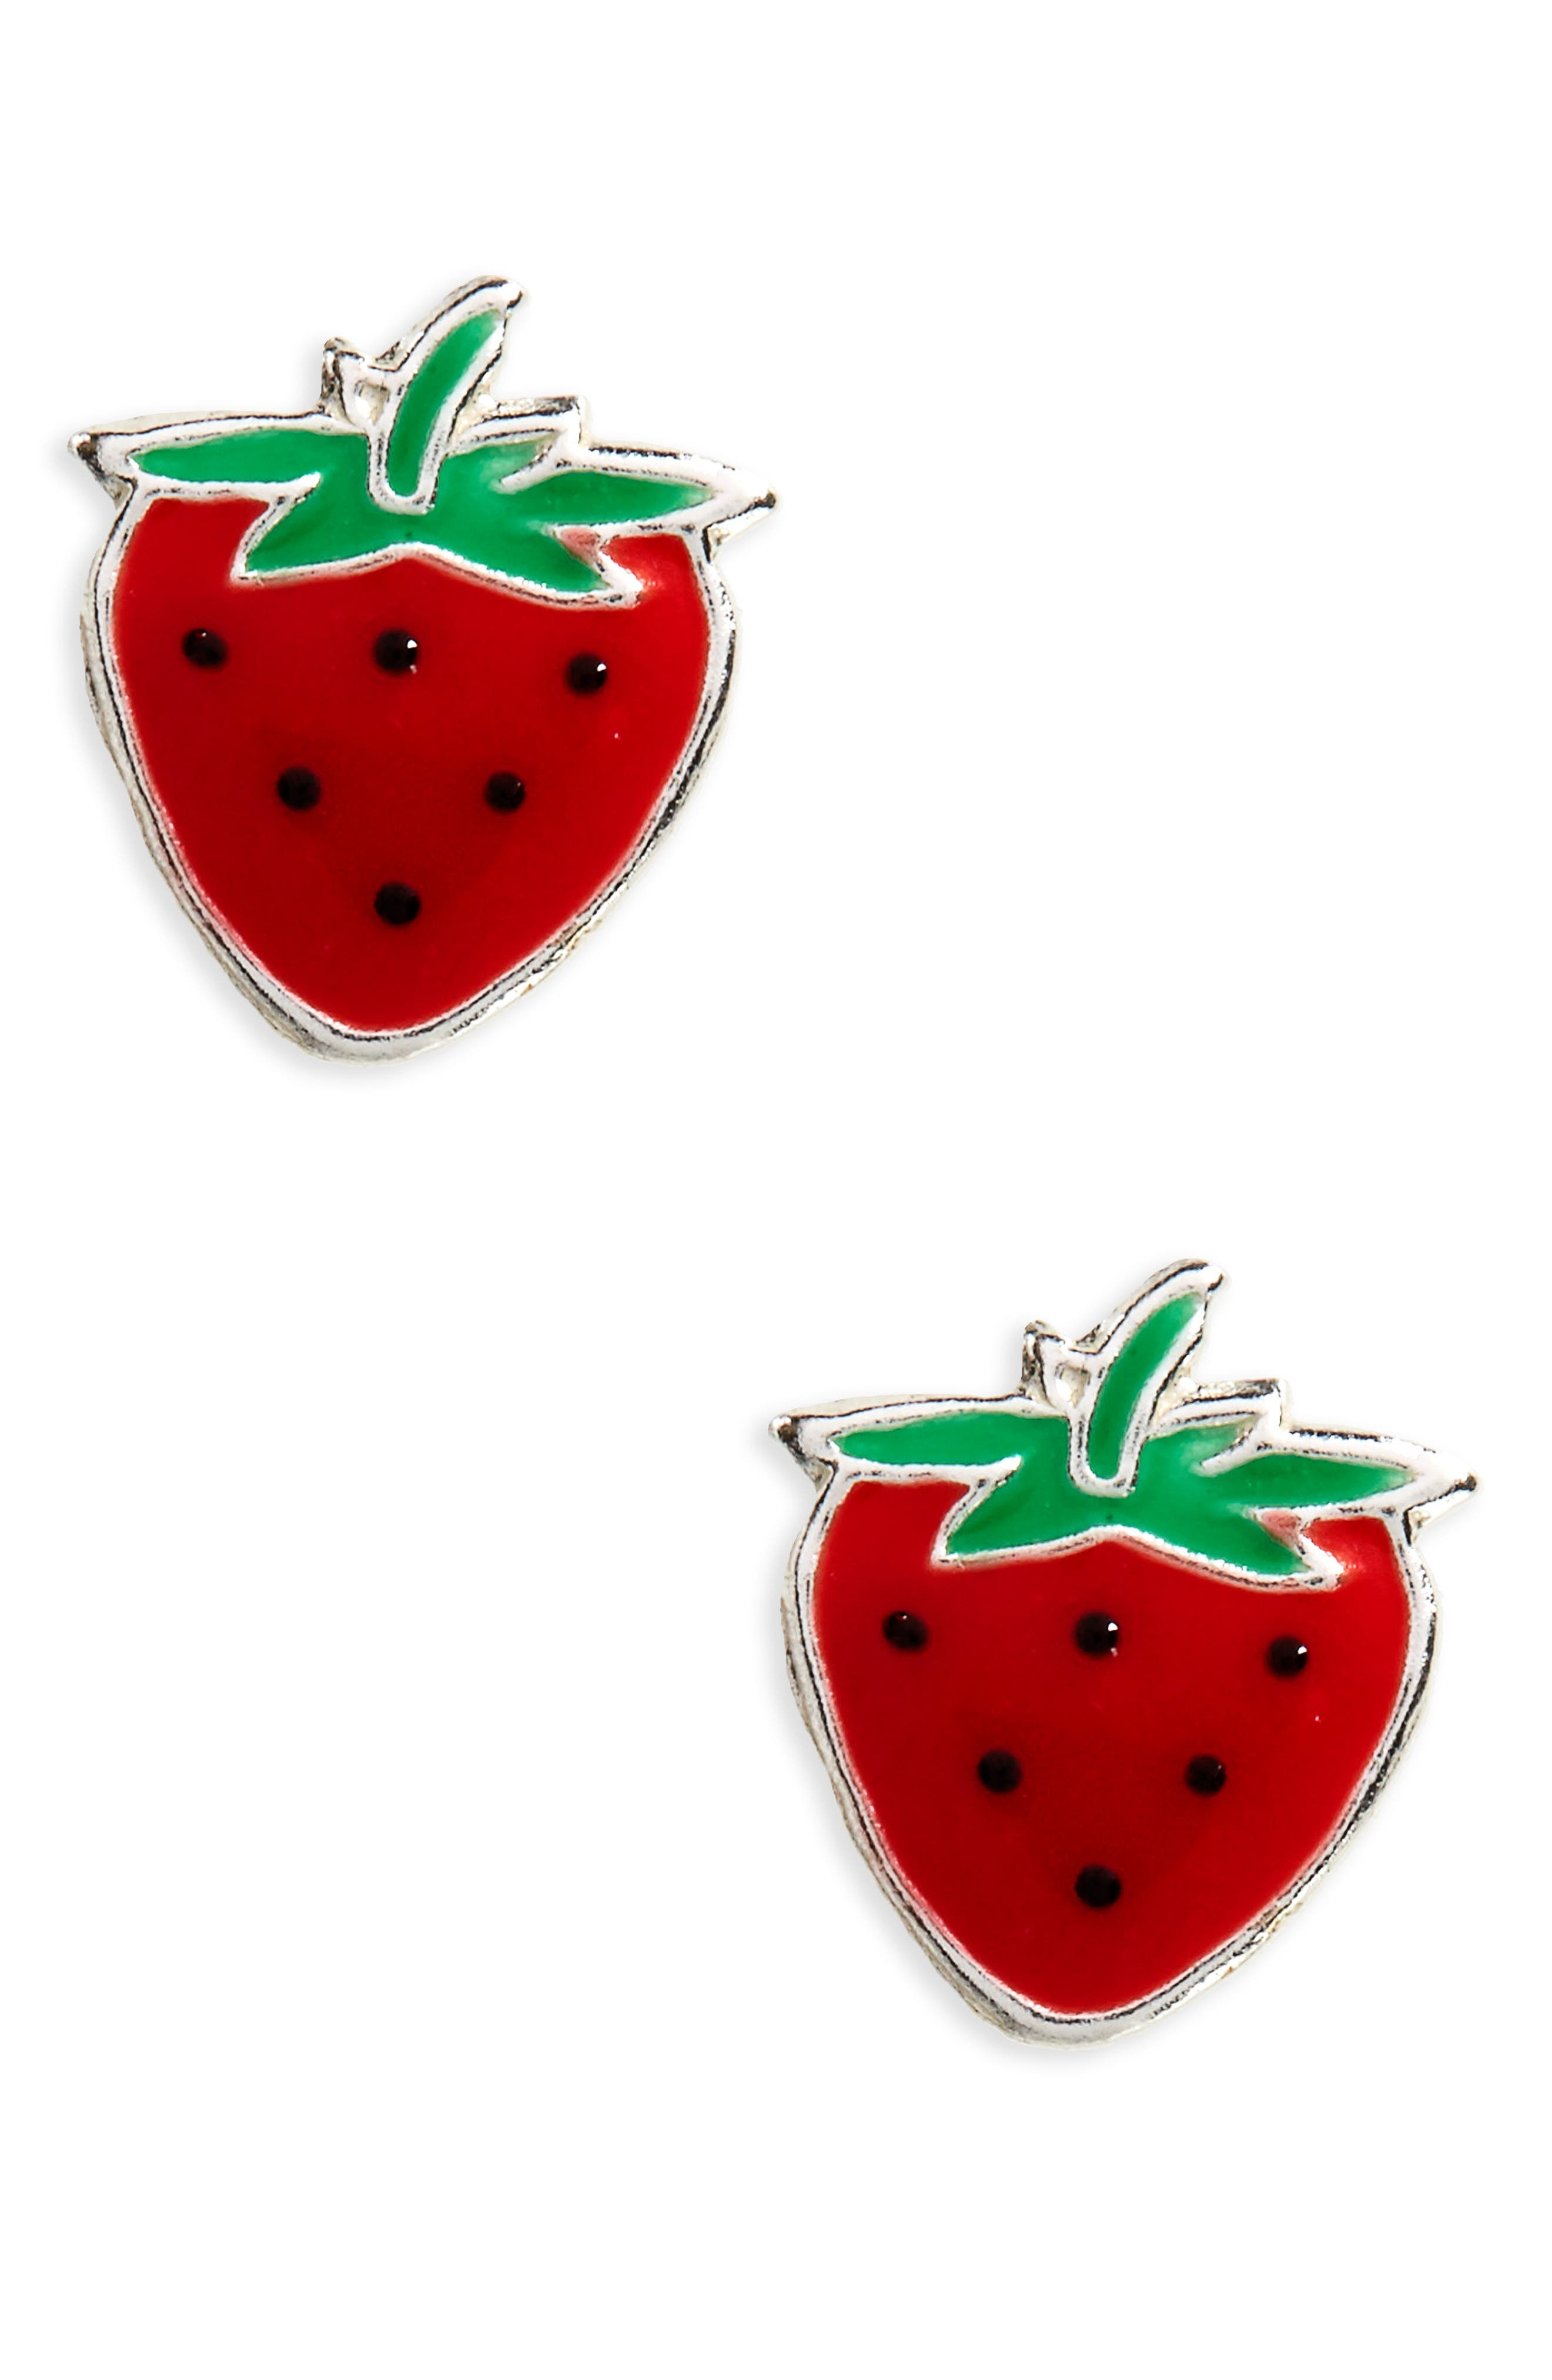 Strawberry Sterling Silver Stud Earrings,                             Main thumbnail 1, color,                             600